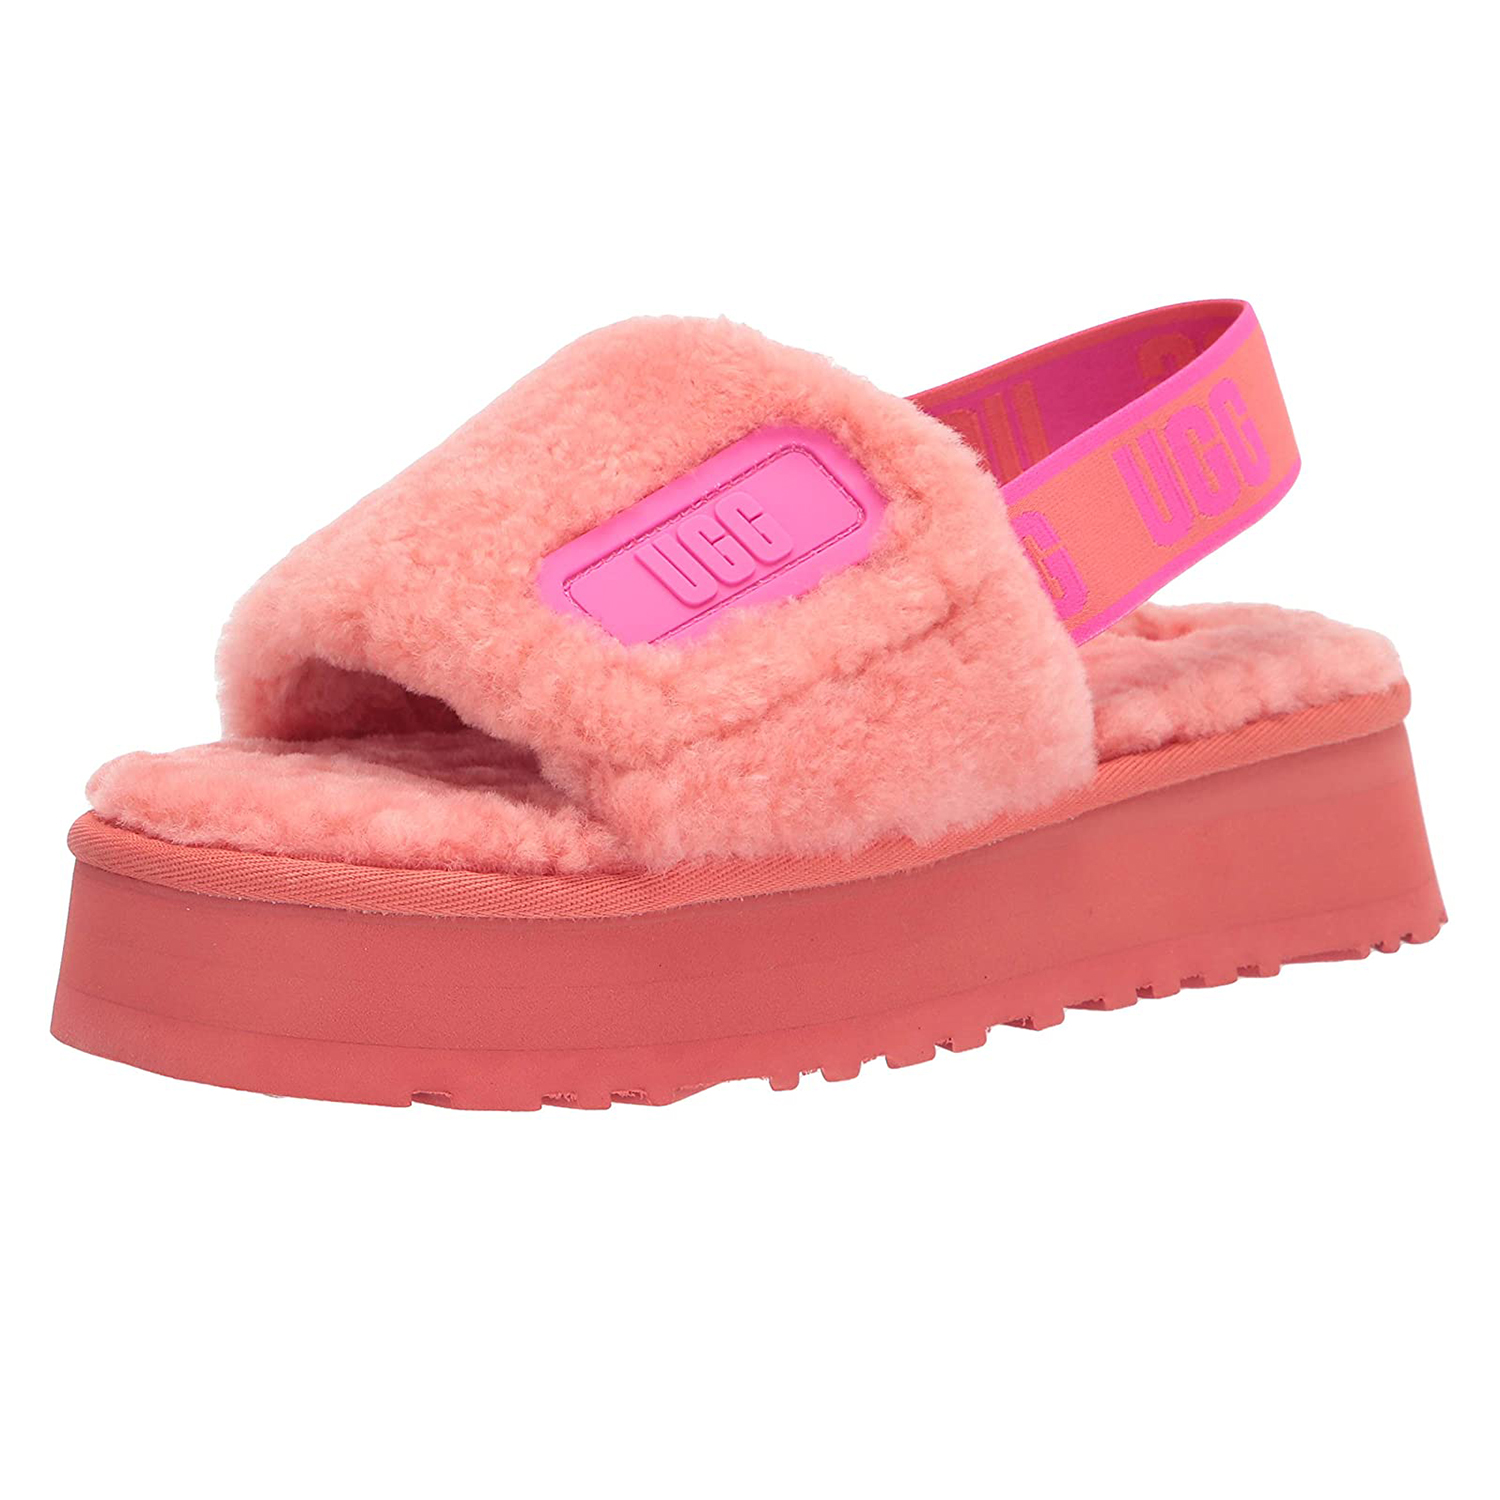 UGG Women's Disco Slide Slipper